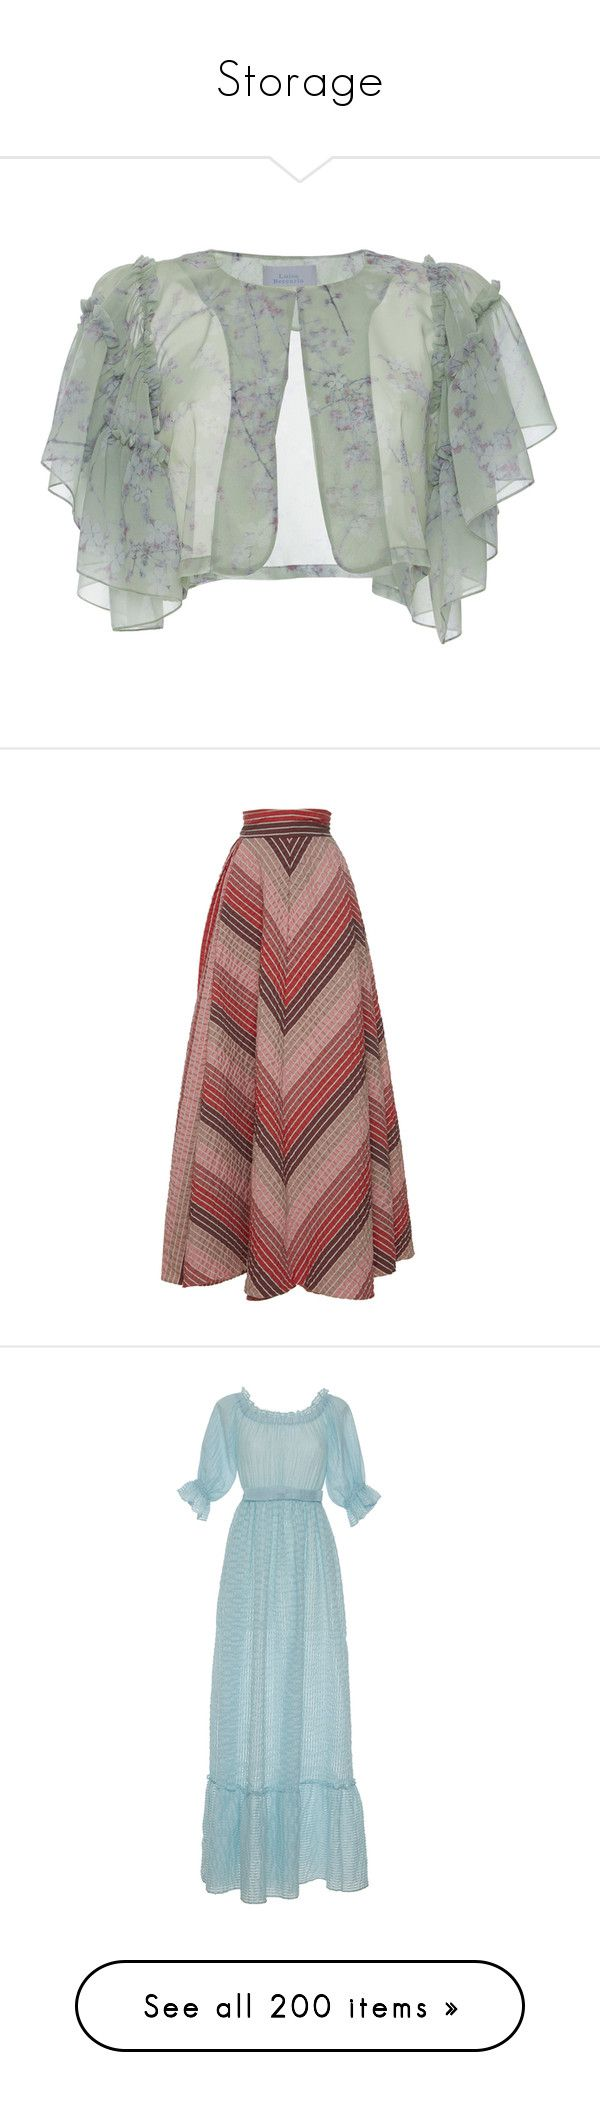 """""""Storage"""" by amberelb ❤ liked on Polyvore featuring green, luisa beccaria, skirts, pink, maxi skirt, pleated maxi skirts, long skirts, high waisted pleated maxi skirt, red maxi skirt and dresses"""